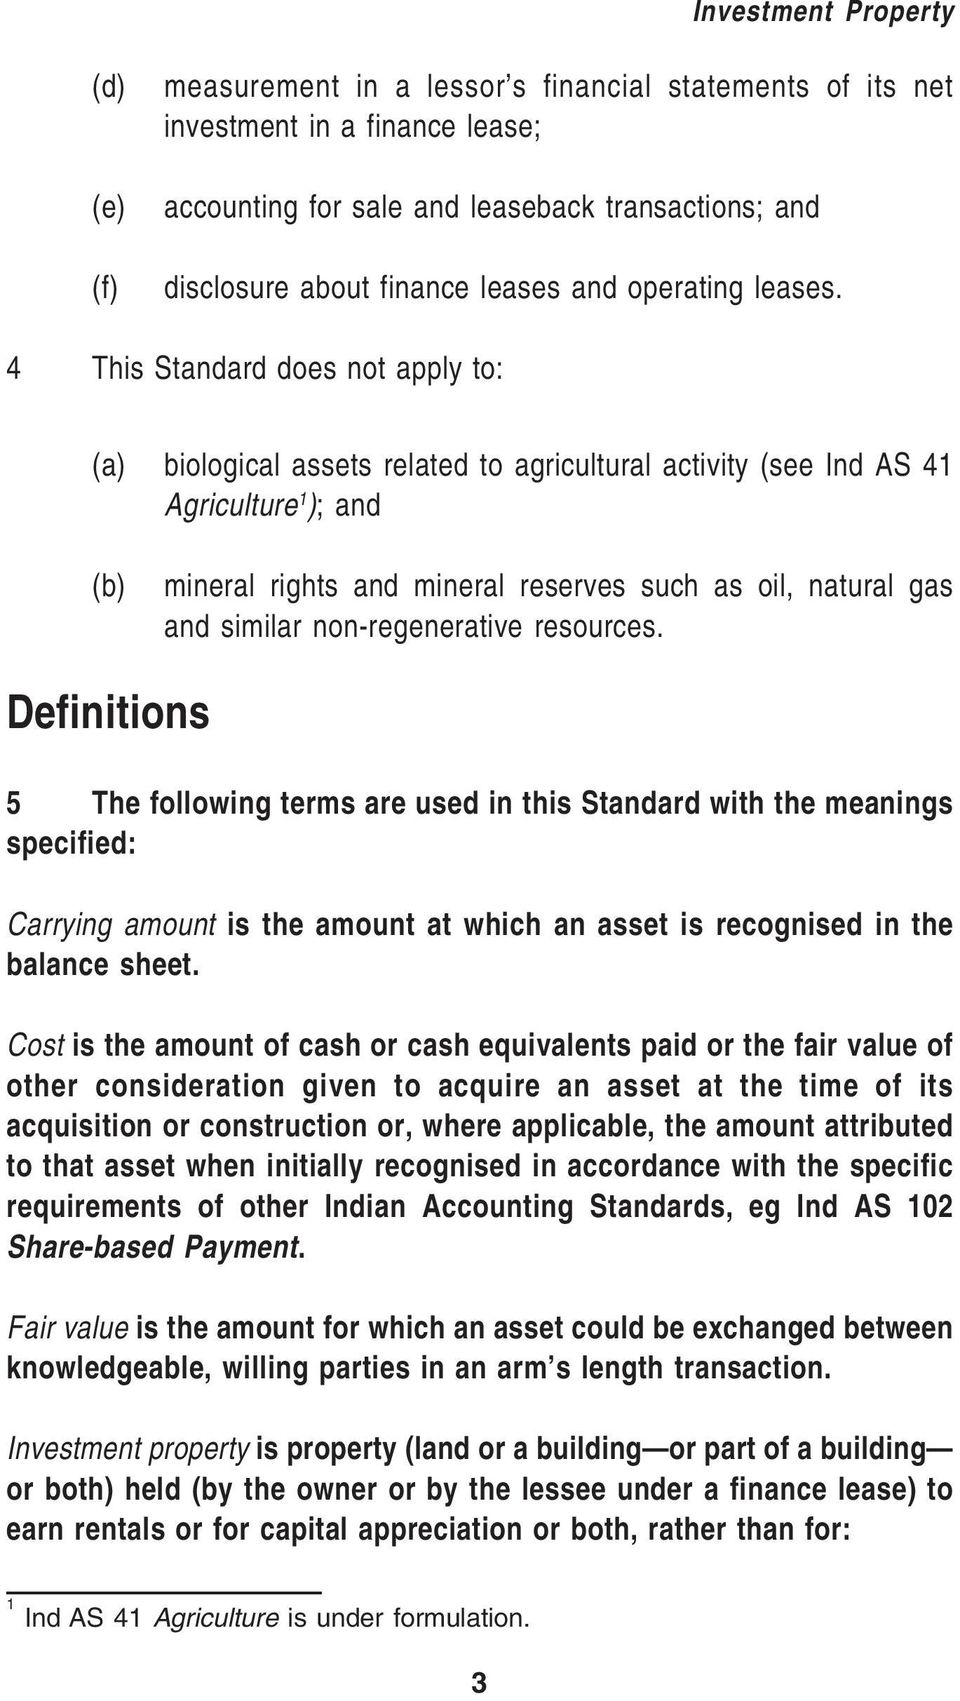 4 This Standard does not apply to: biological assets related to agricultural activity (see Ind AS 41 Agriculture 1 ); and mineral rights and mineral reserves such as oil, natural gas and similar